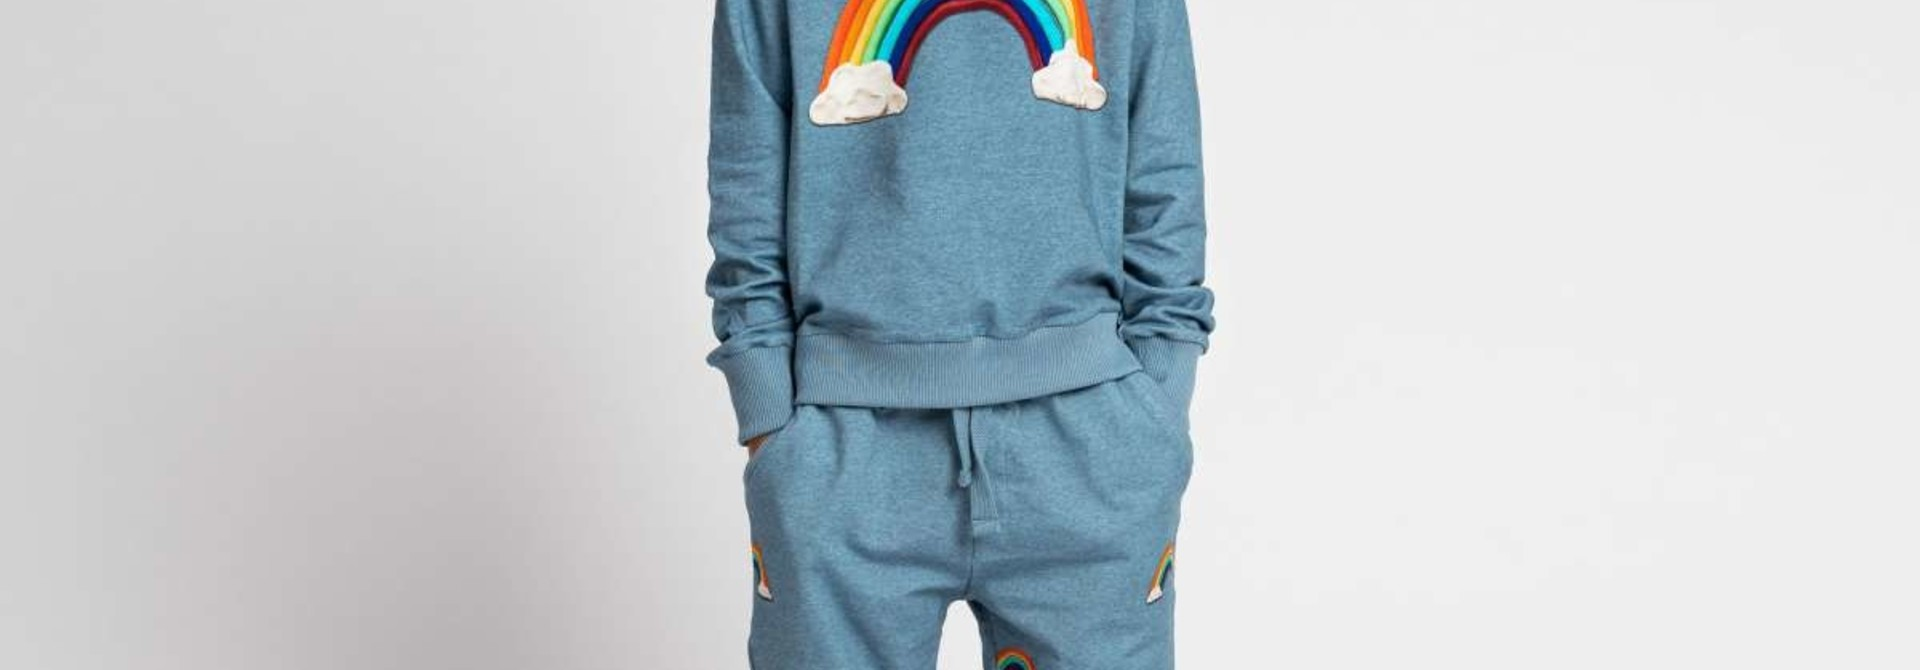 Sweatsuit - Rainbow - 2pc. - Sz 9/10 Yr